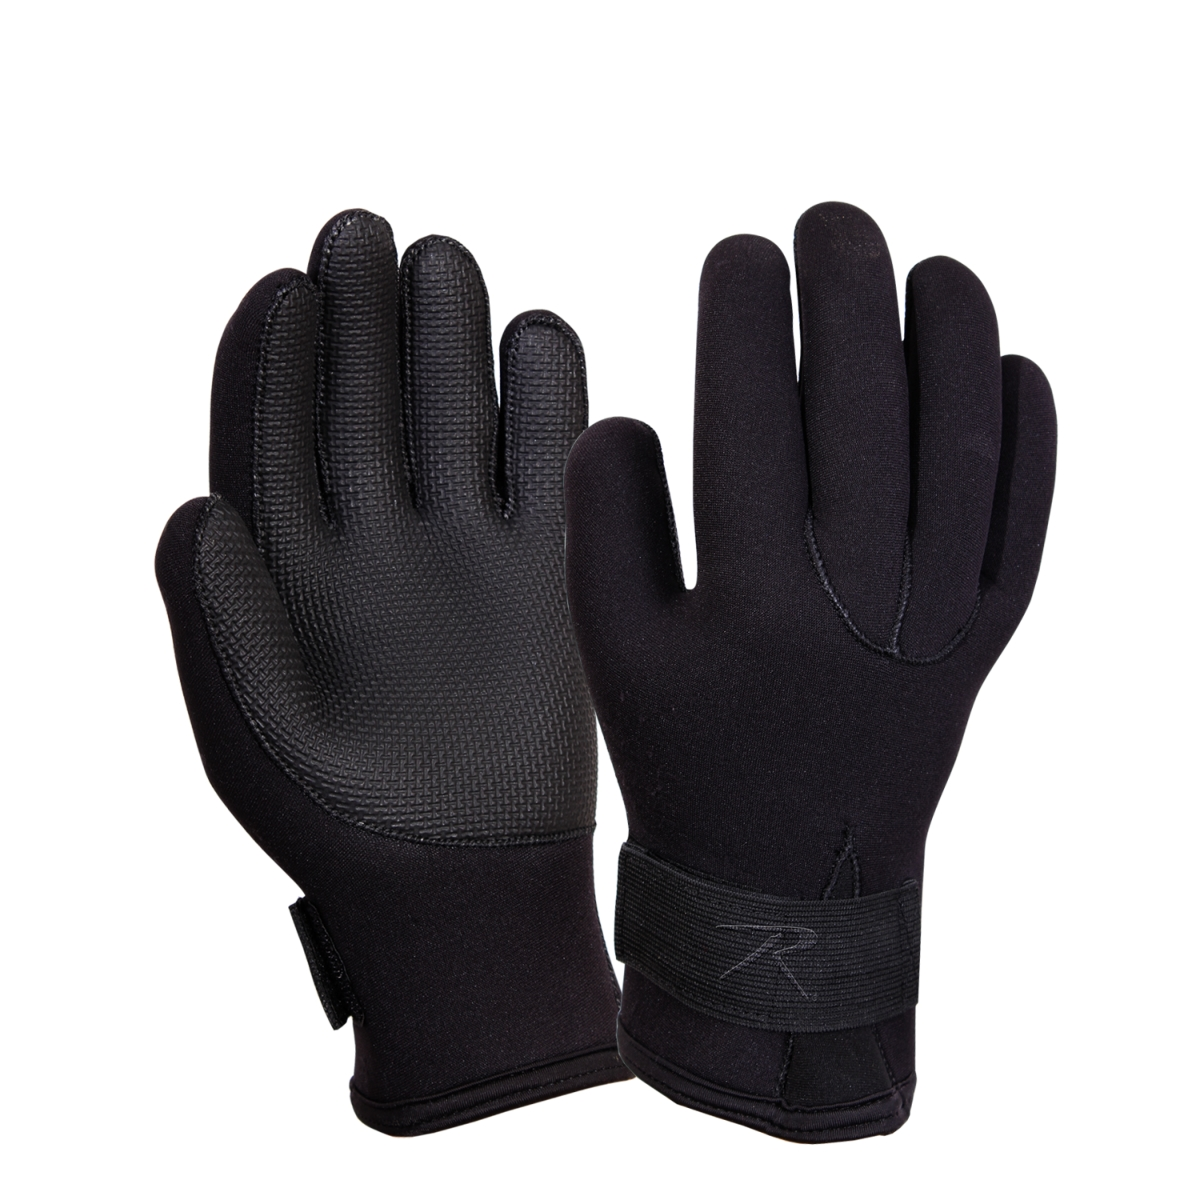 Rothco Waterproof Cold Weather Neoprene Gloves by Rothco